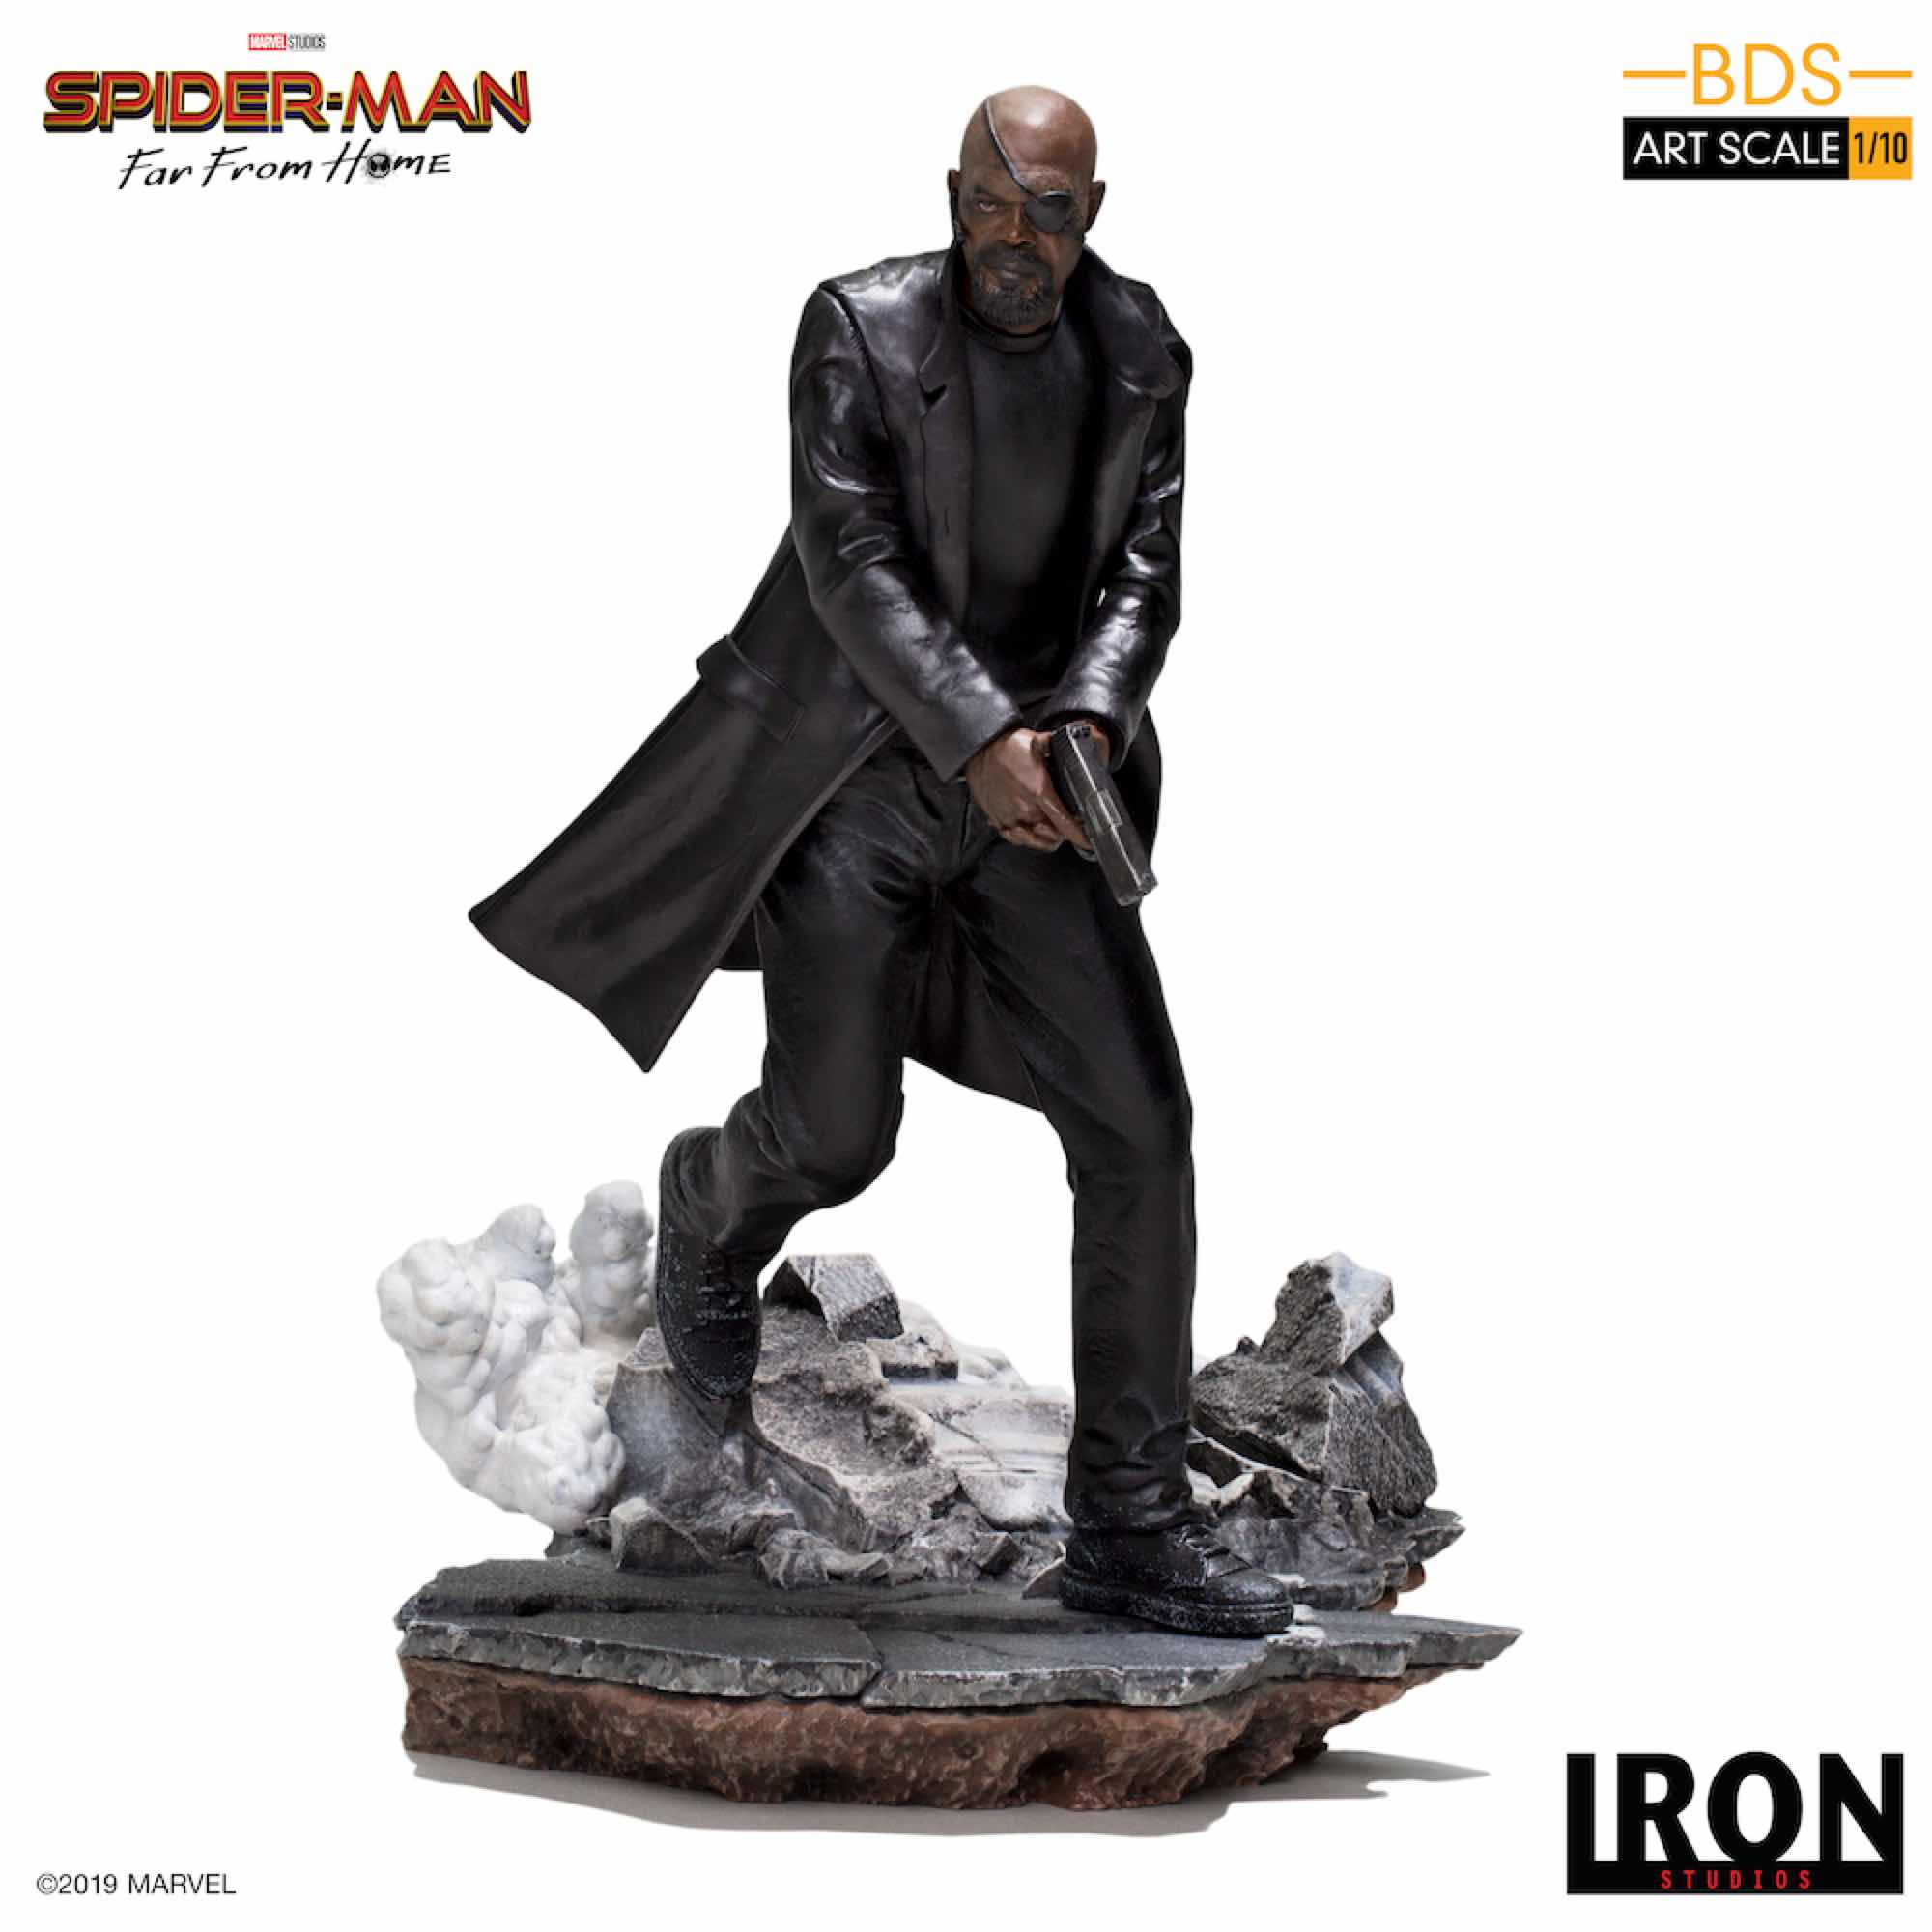 NICK FURY FIG 19 CM BDS 1/10 ART SCALE IRON STUDIOS SPIDER-MAN FAR FROM HOME